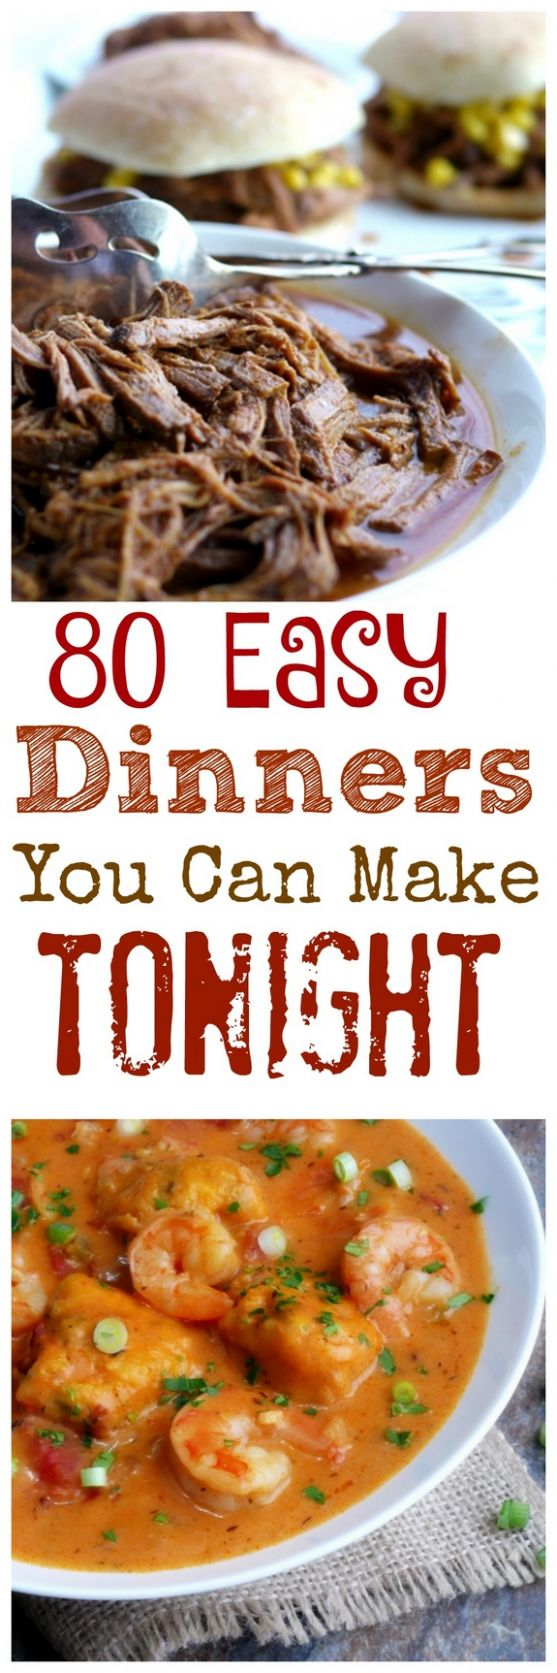 11 Easy Dinners You Can Make Tonight - Recipes Dinner Tonight